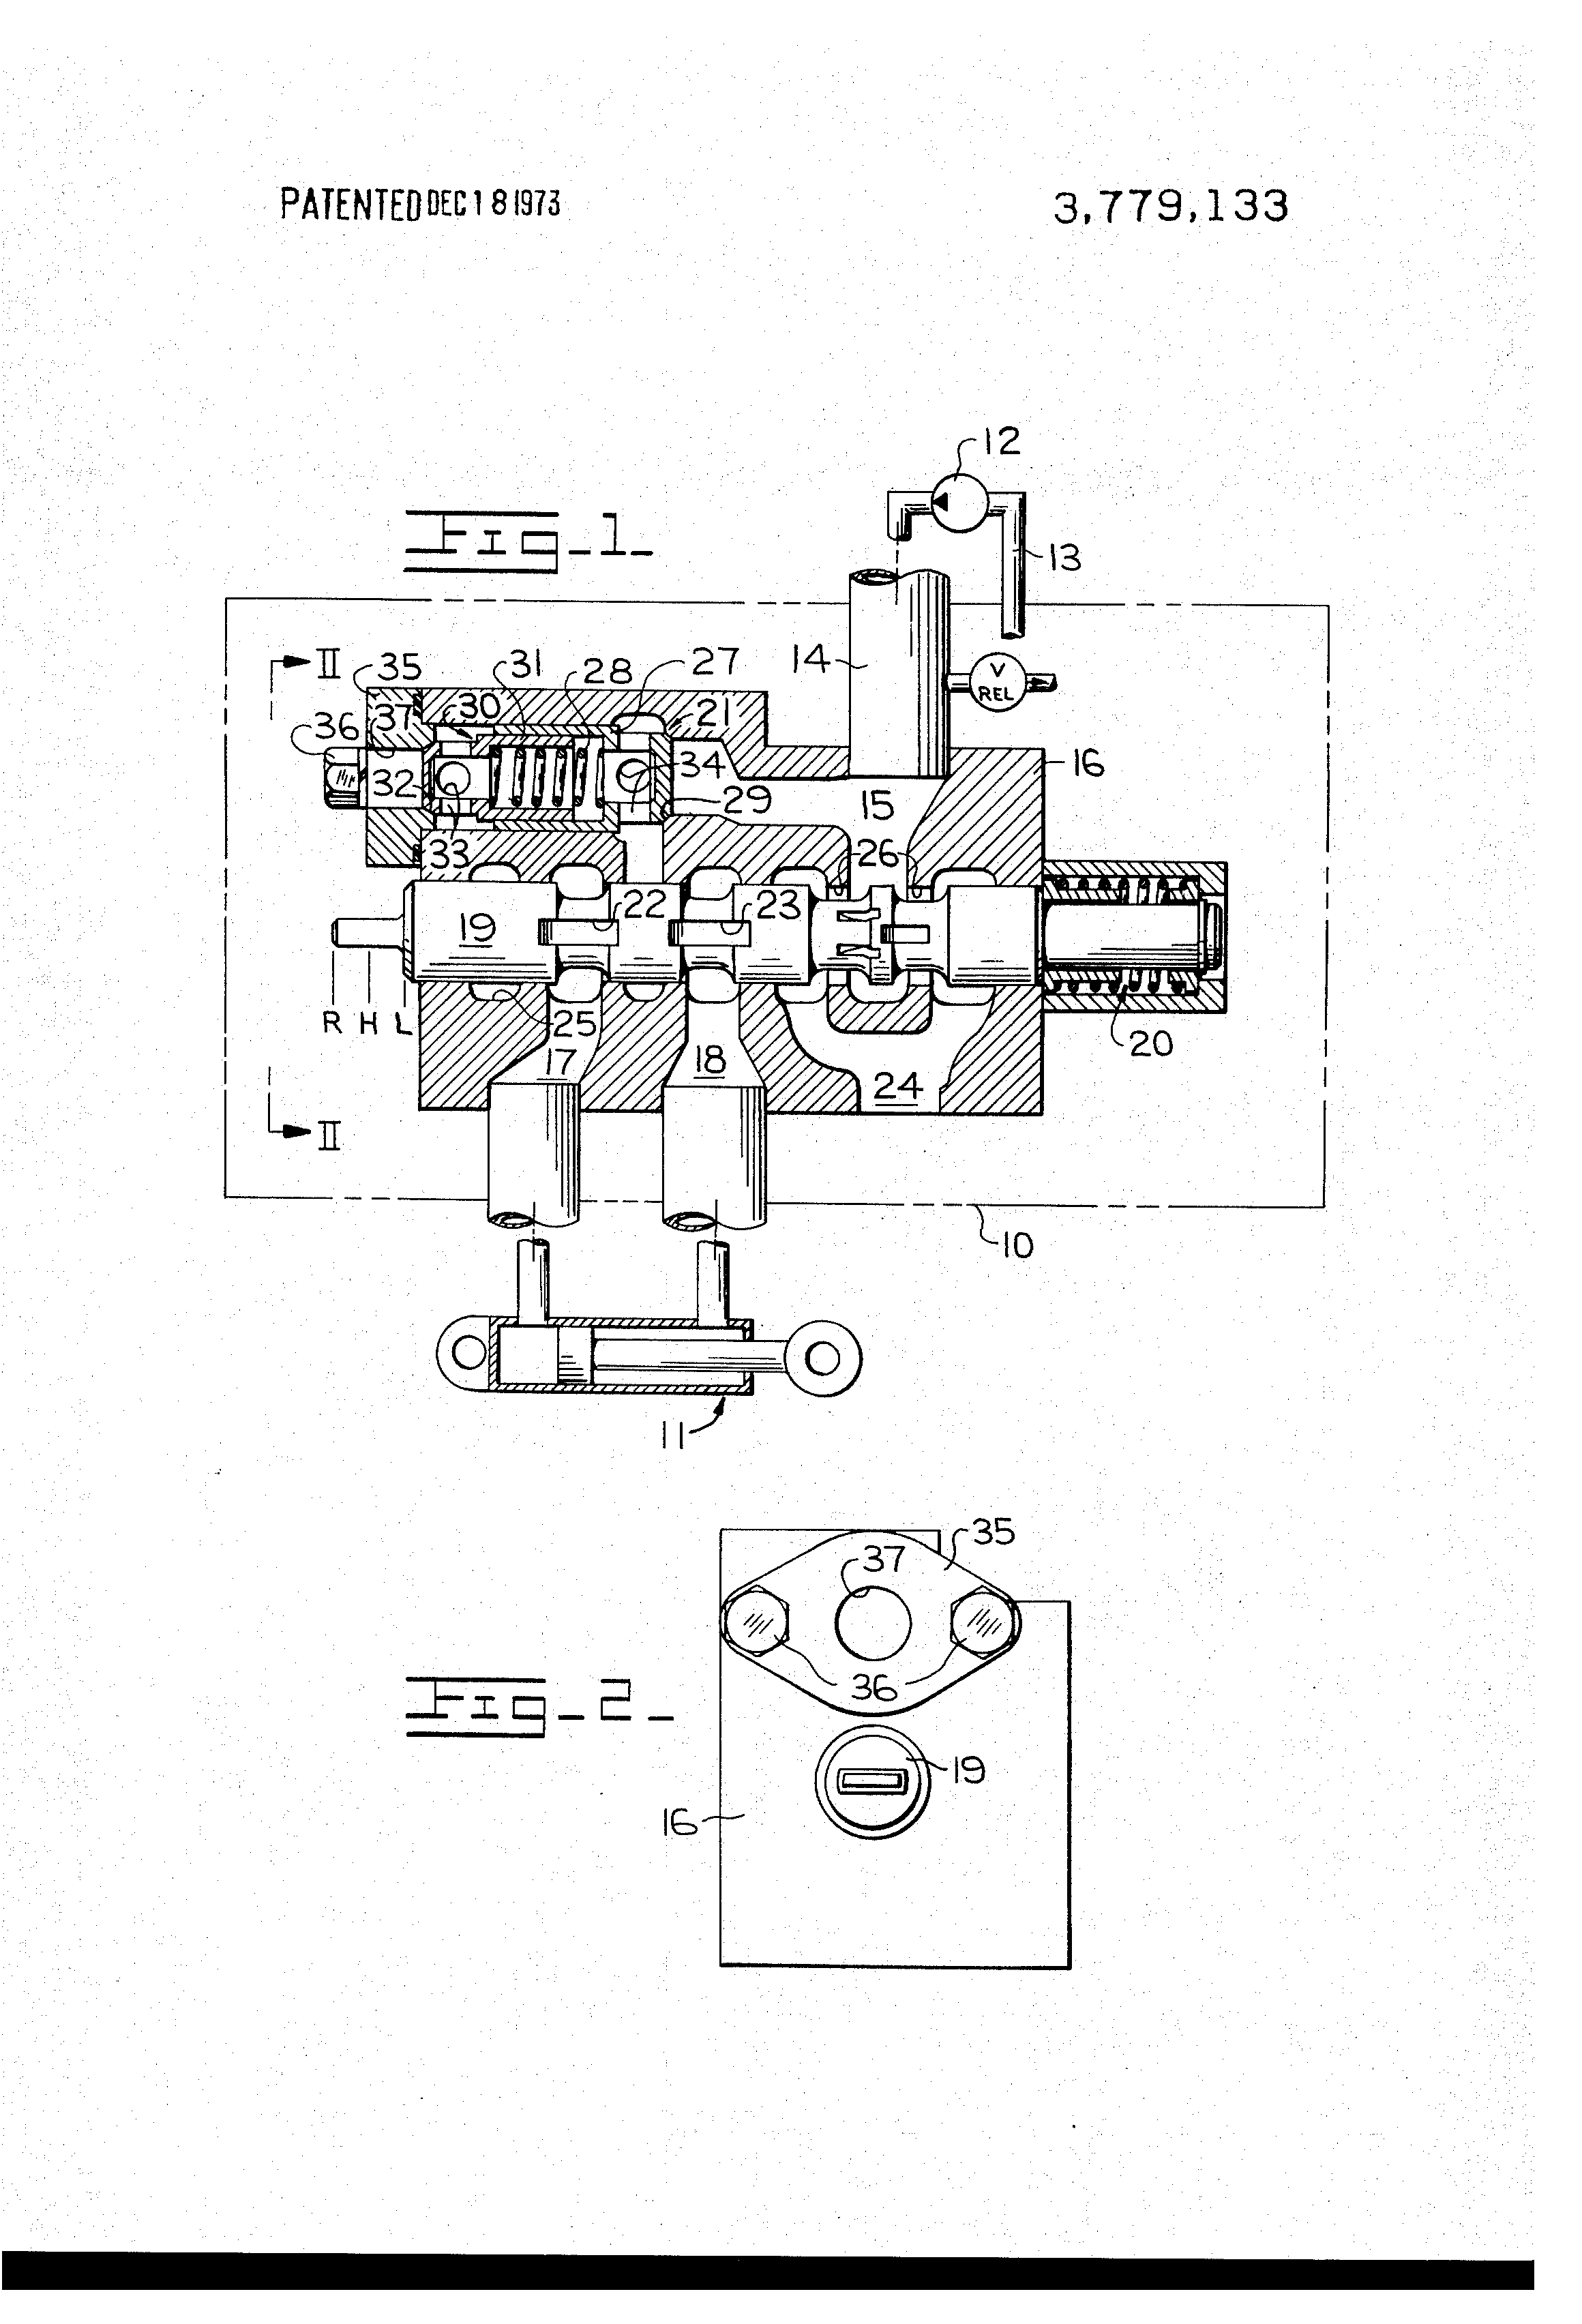 Hook up drawing of control valve